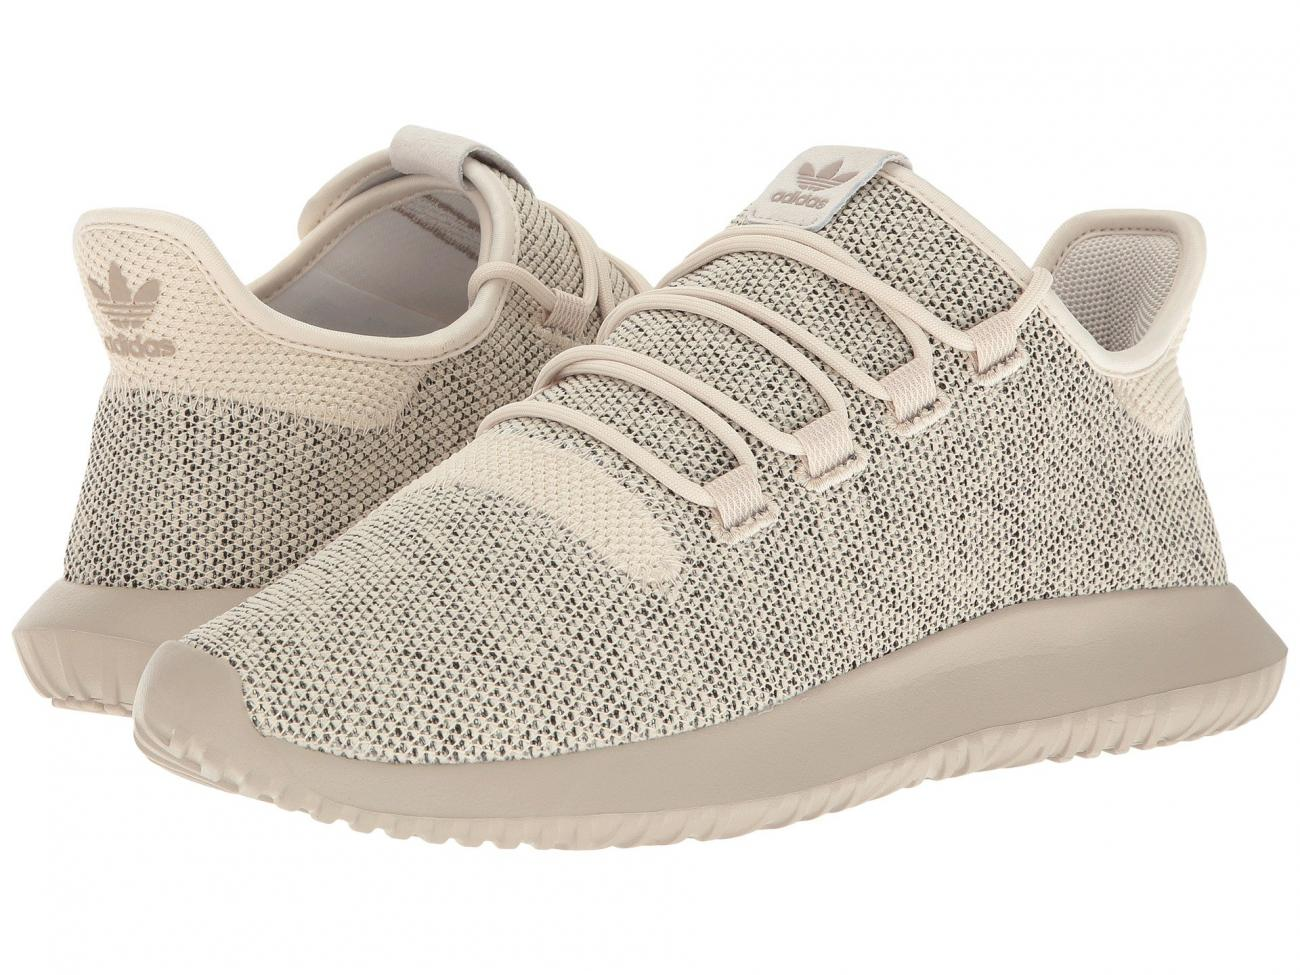 adidas tubular shadow